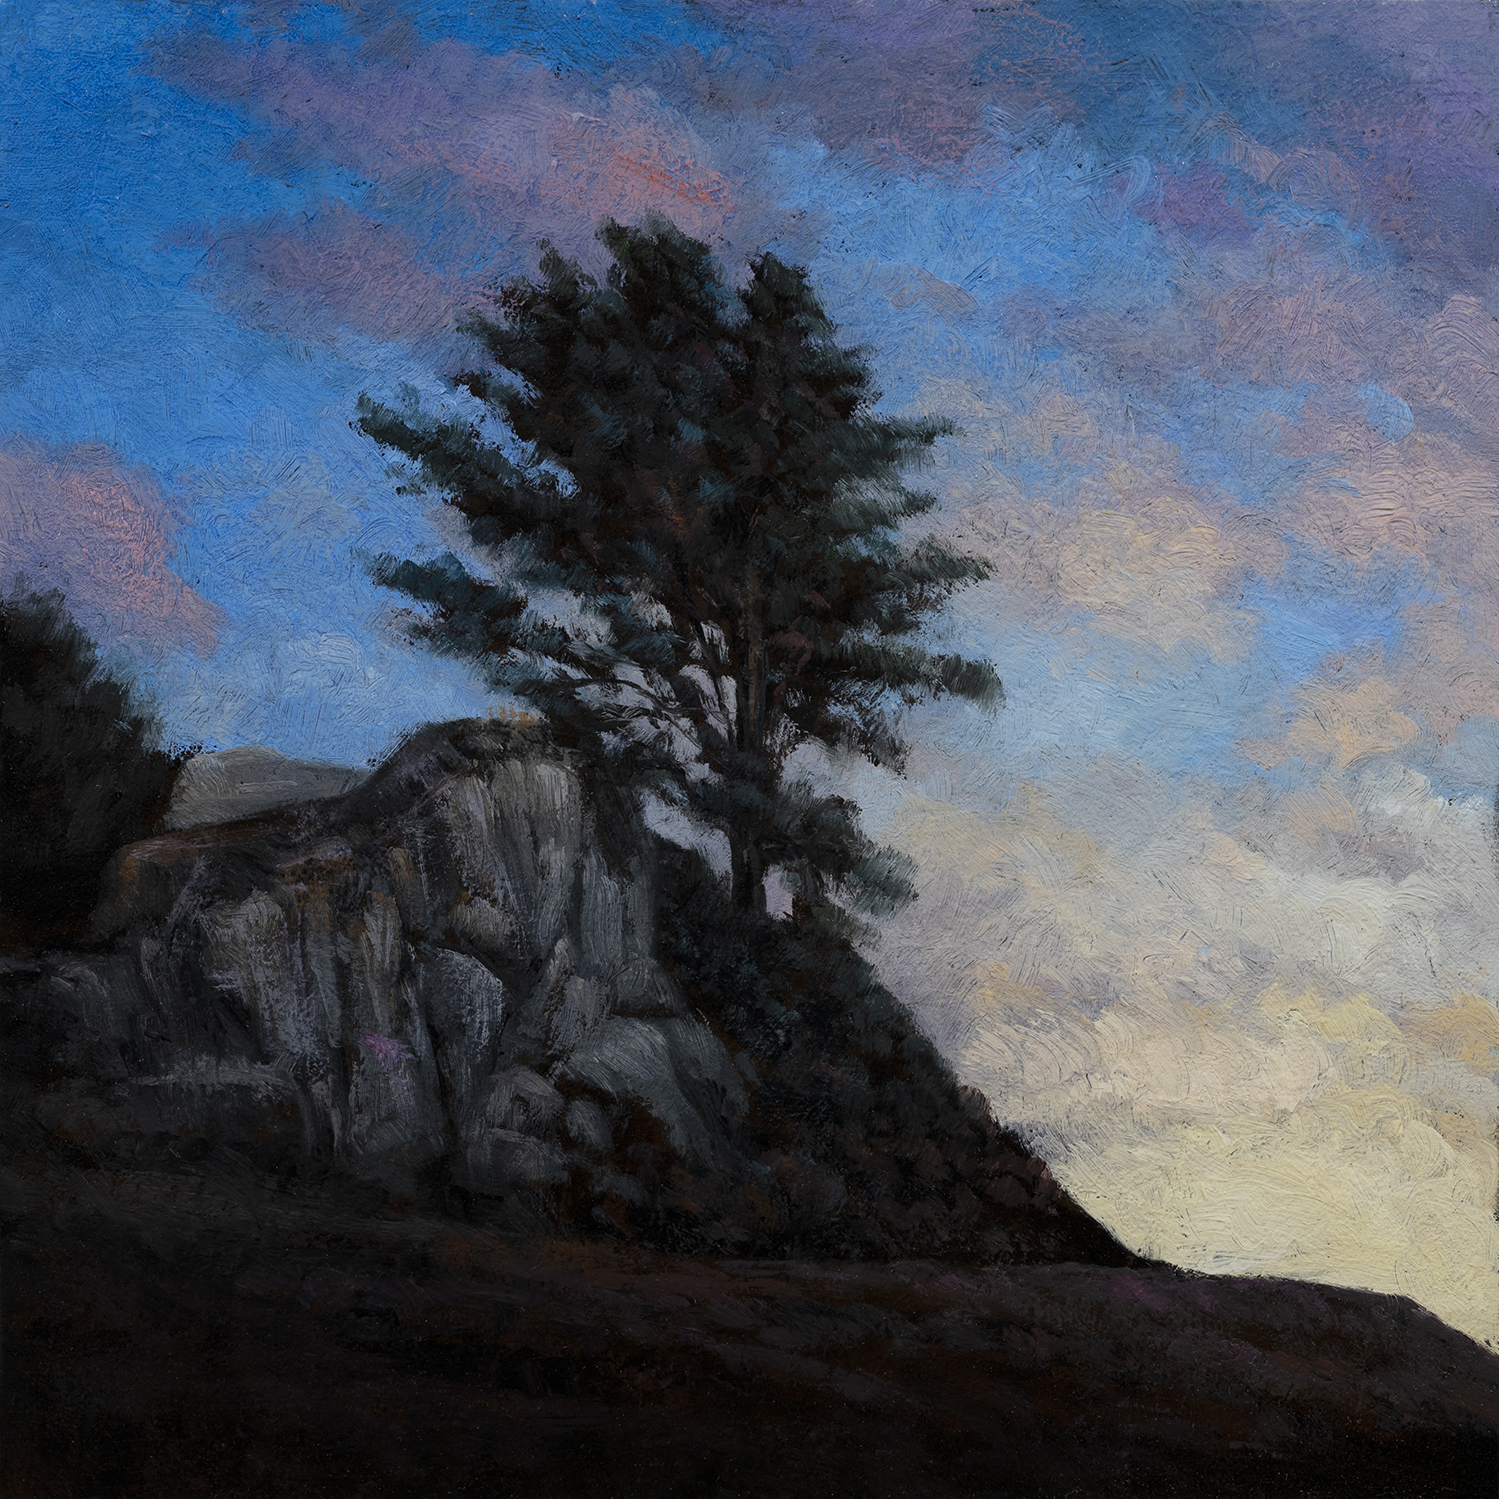 Evening is Coming by M Francis McCarthy - 8x8 Oil on Wood Panel